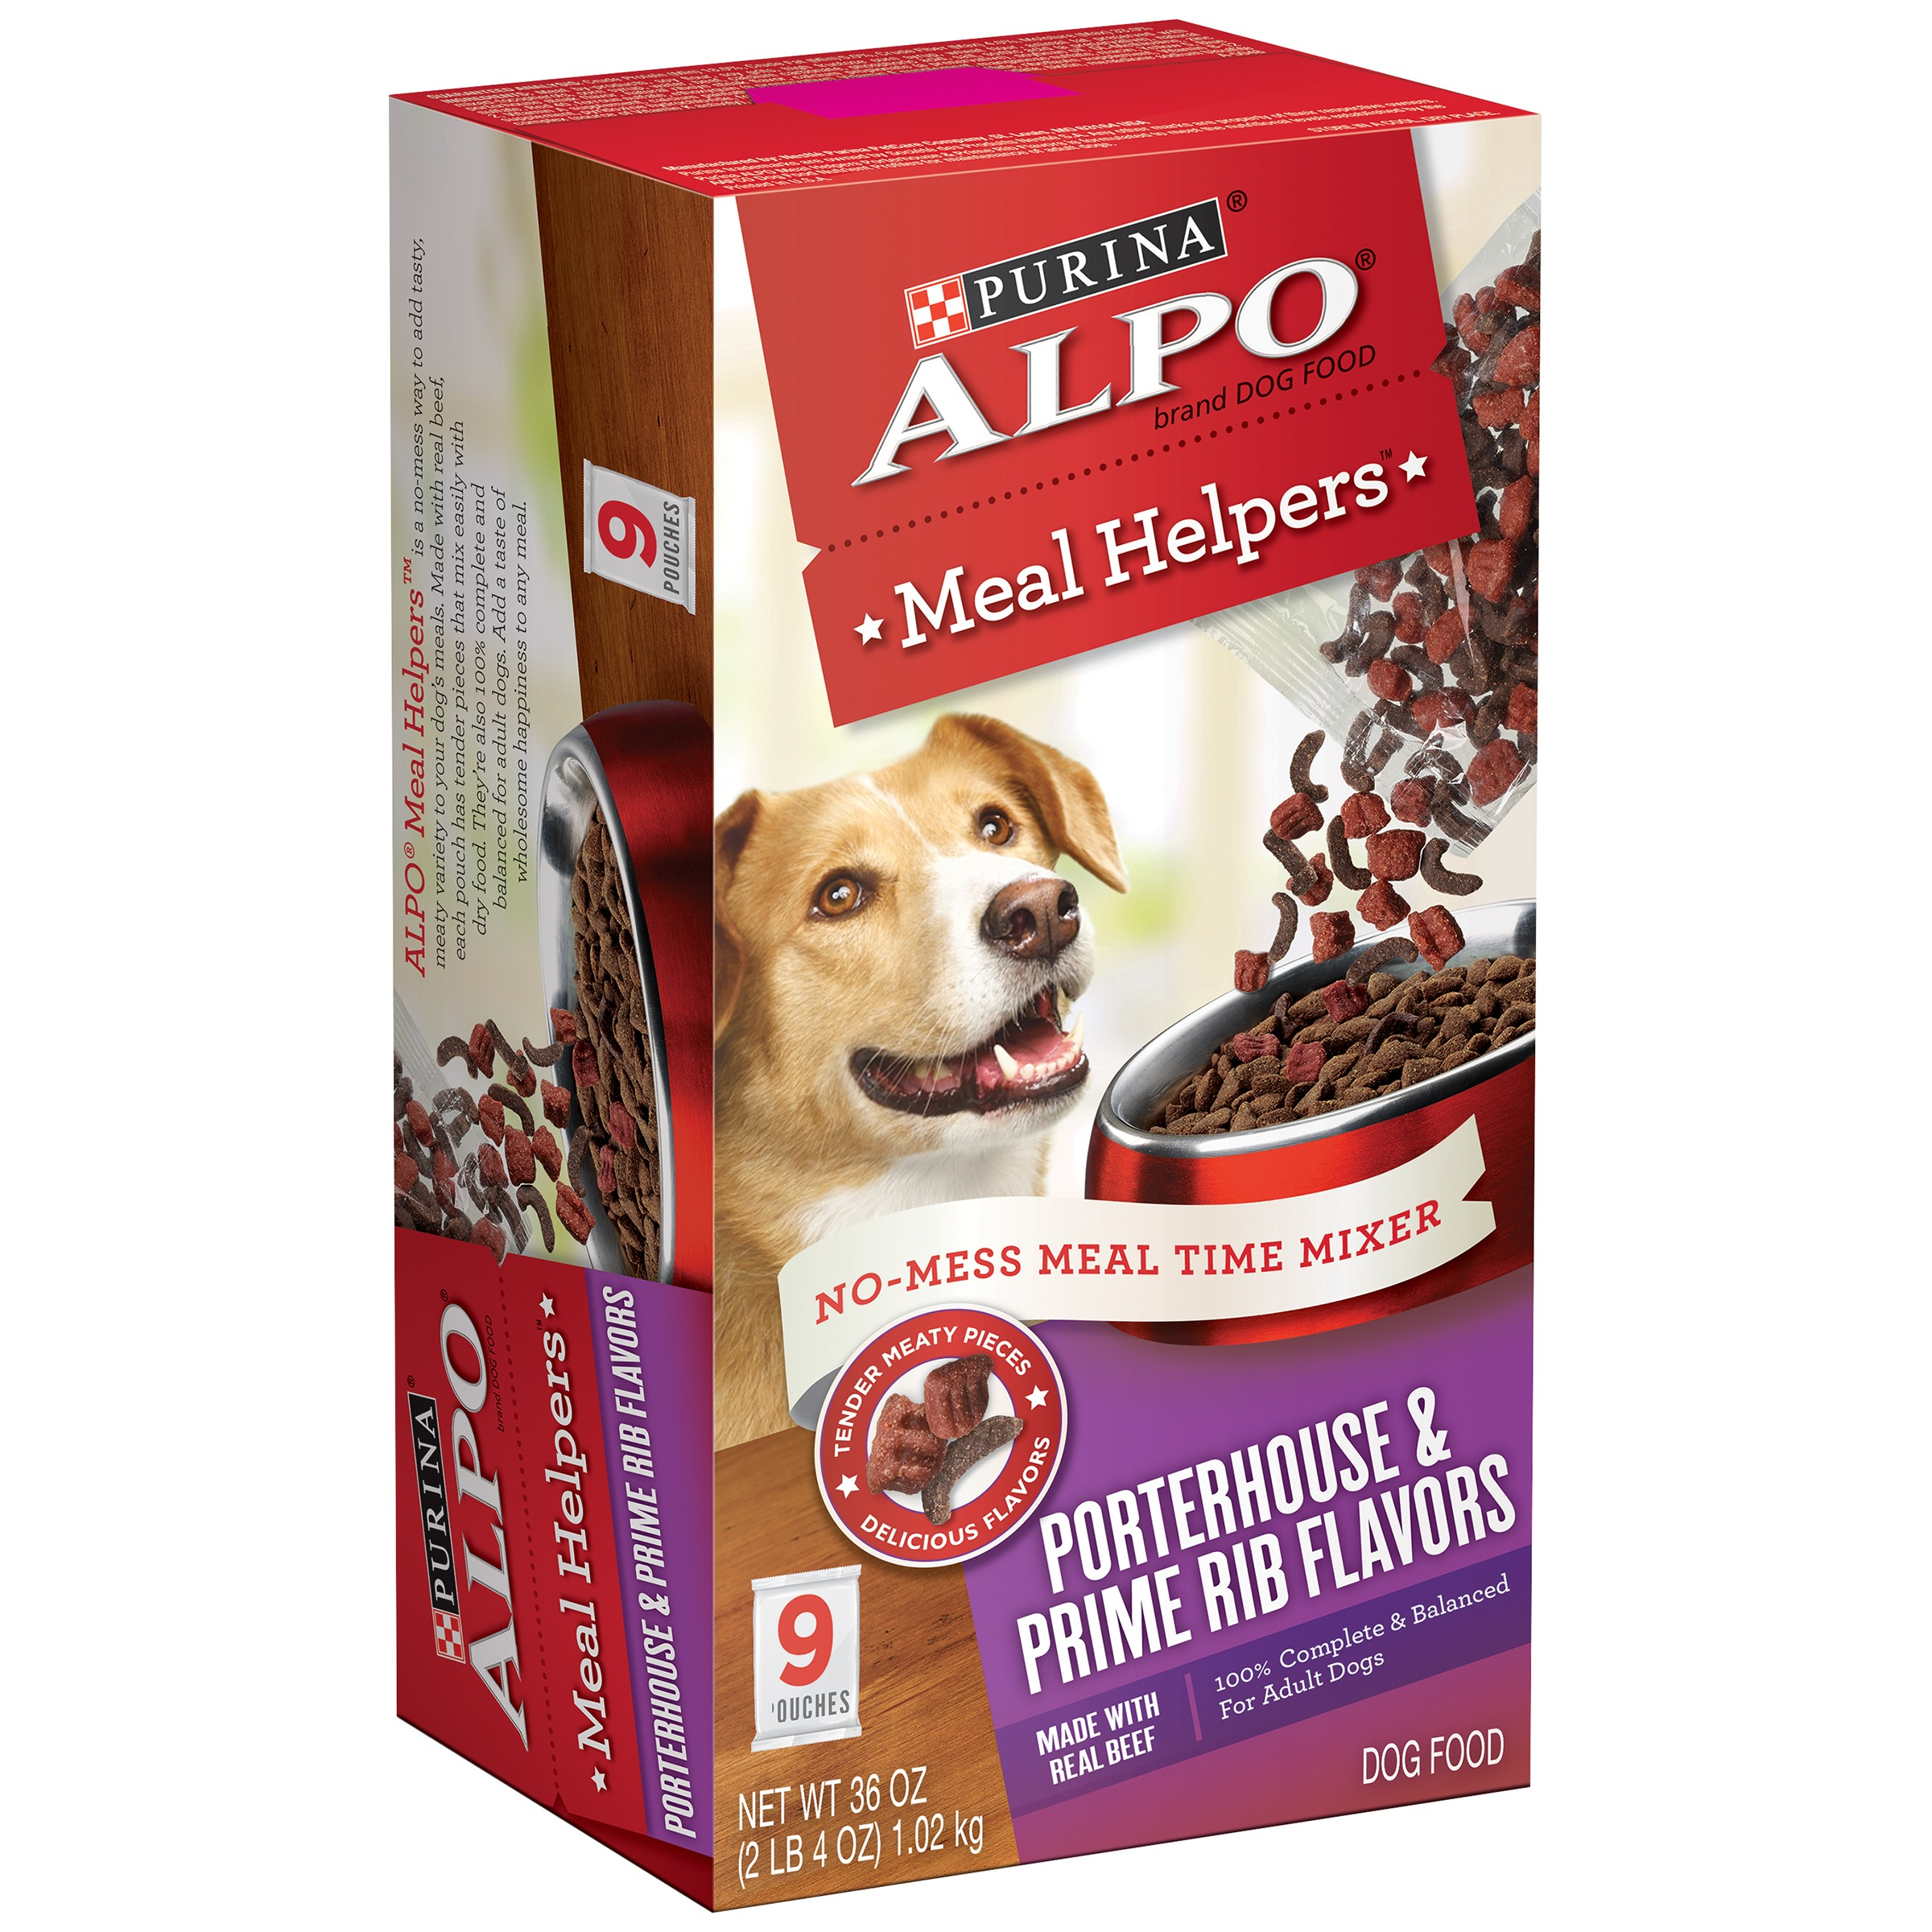 I have 6 dogs been using the dog food for about 3 years. We are strick with our dogs as they don't eat people food unless it's fruit or carrots.